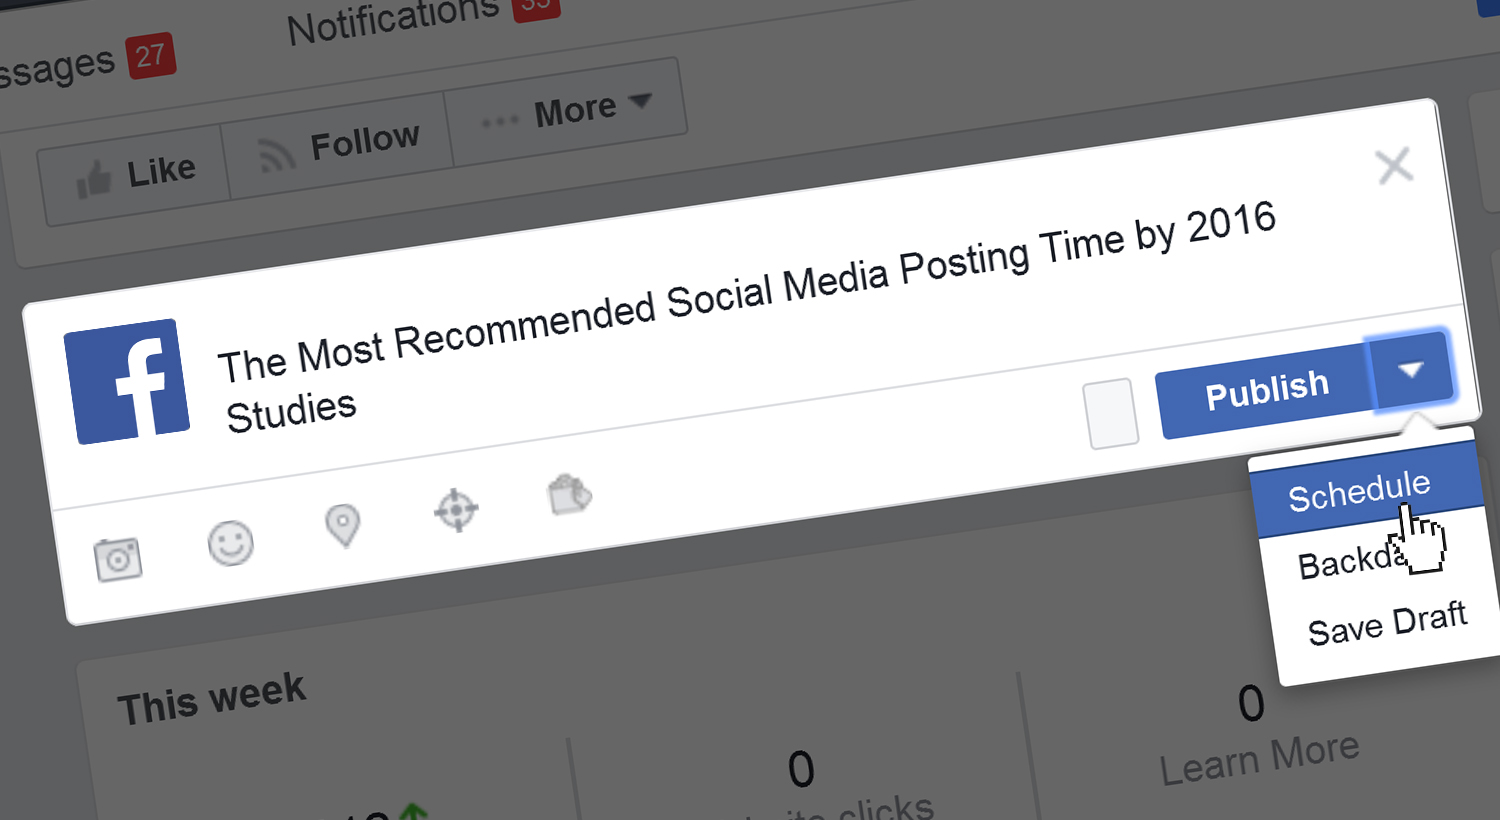 Recommended social media posting time from studies